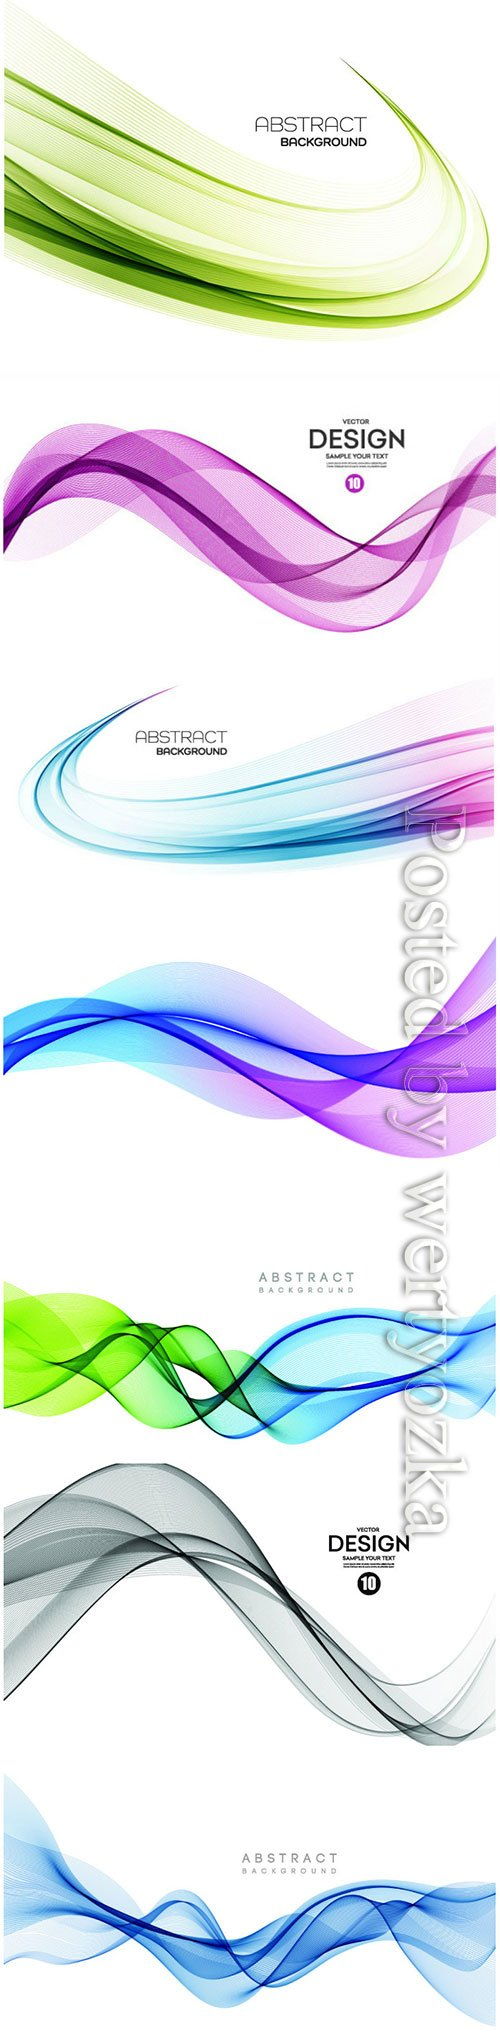 Abstract color waves on vector backgrounds